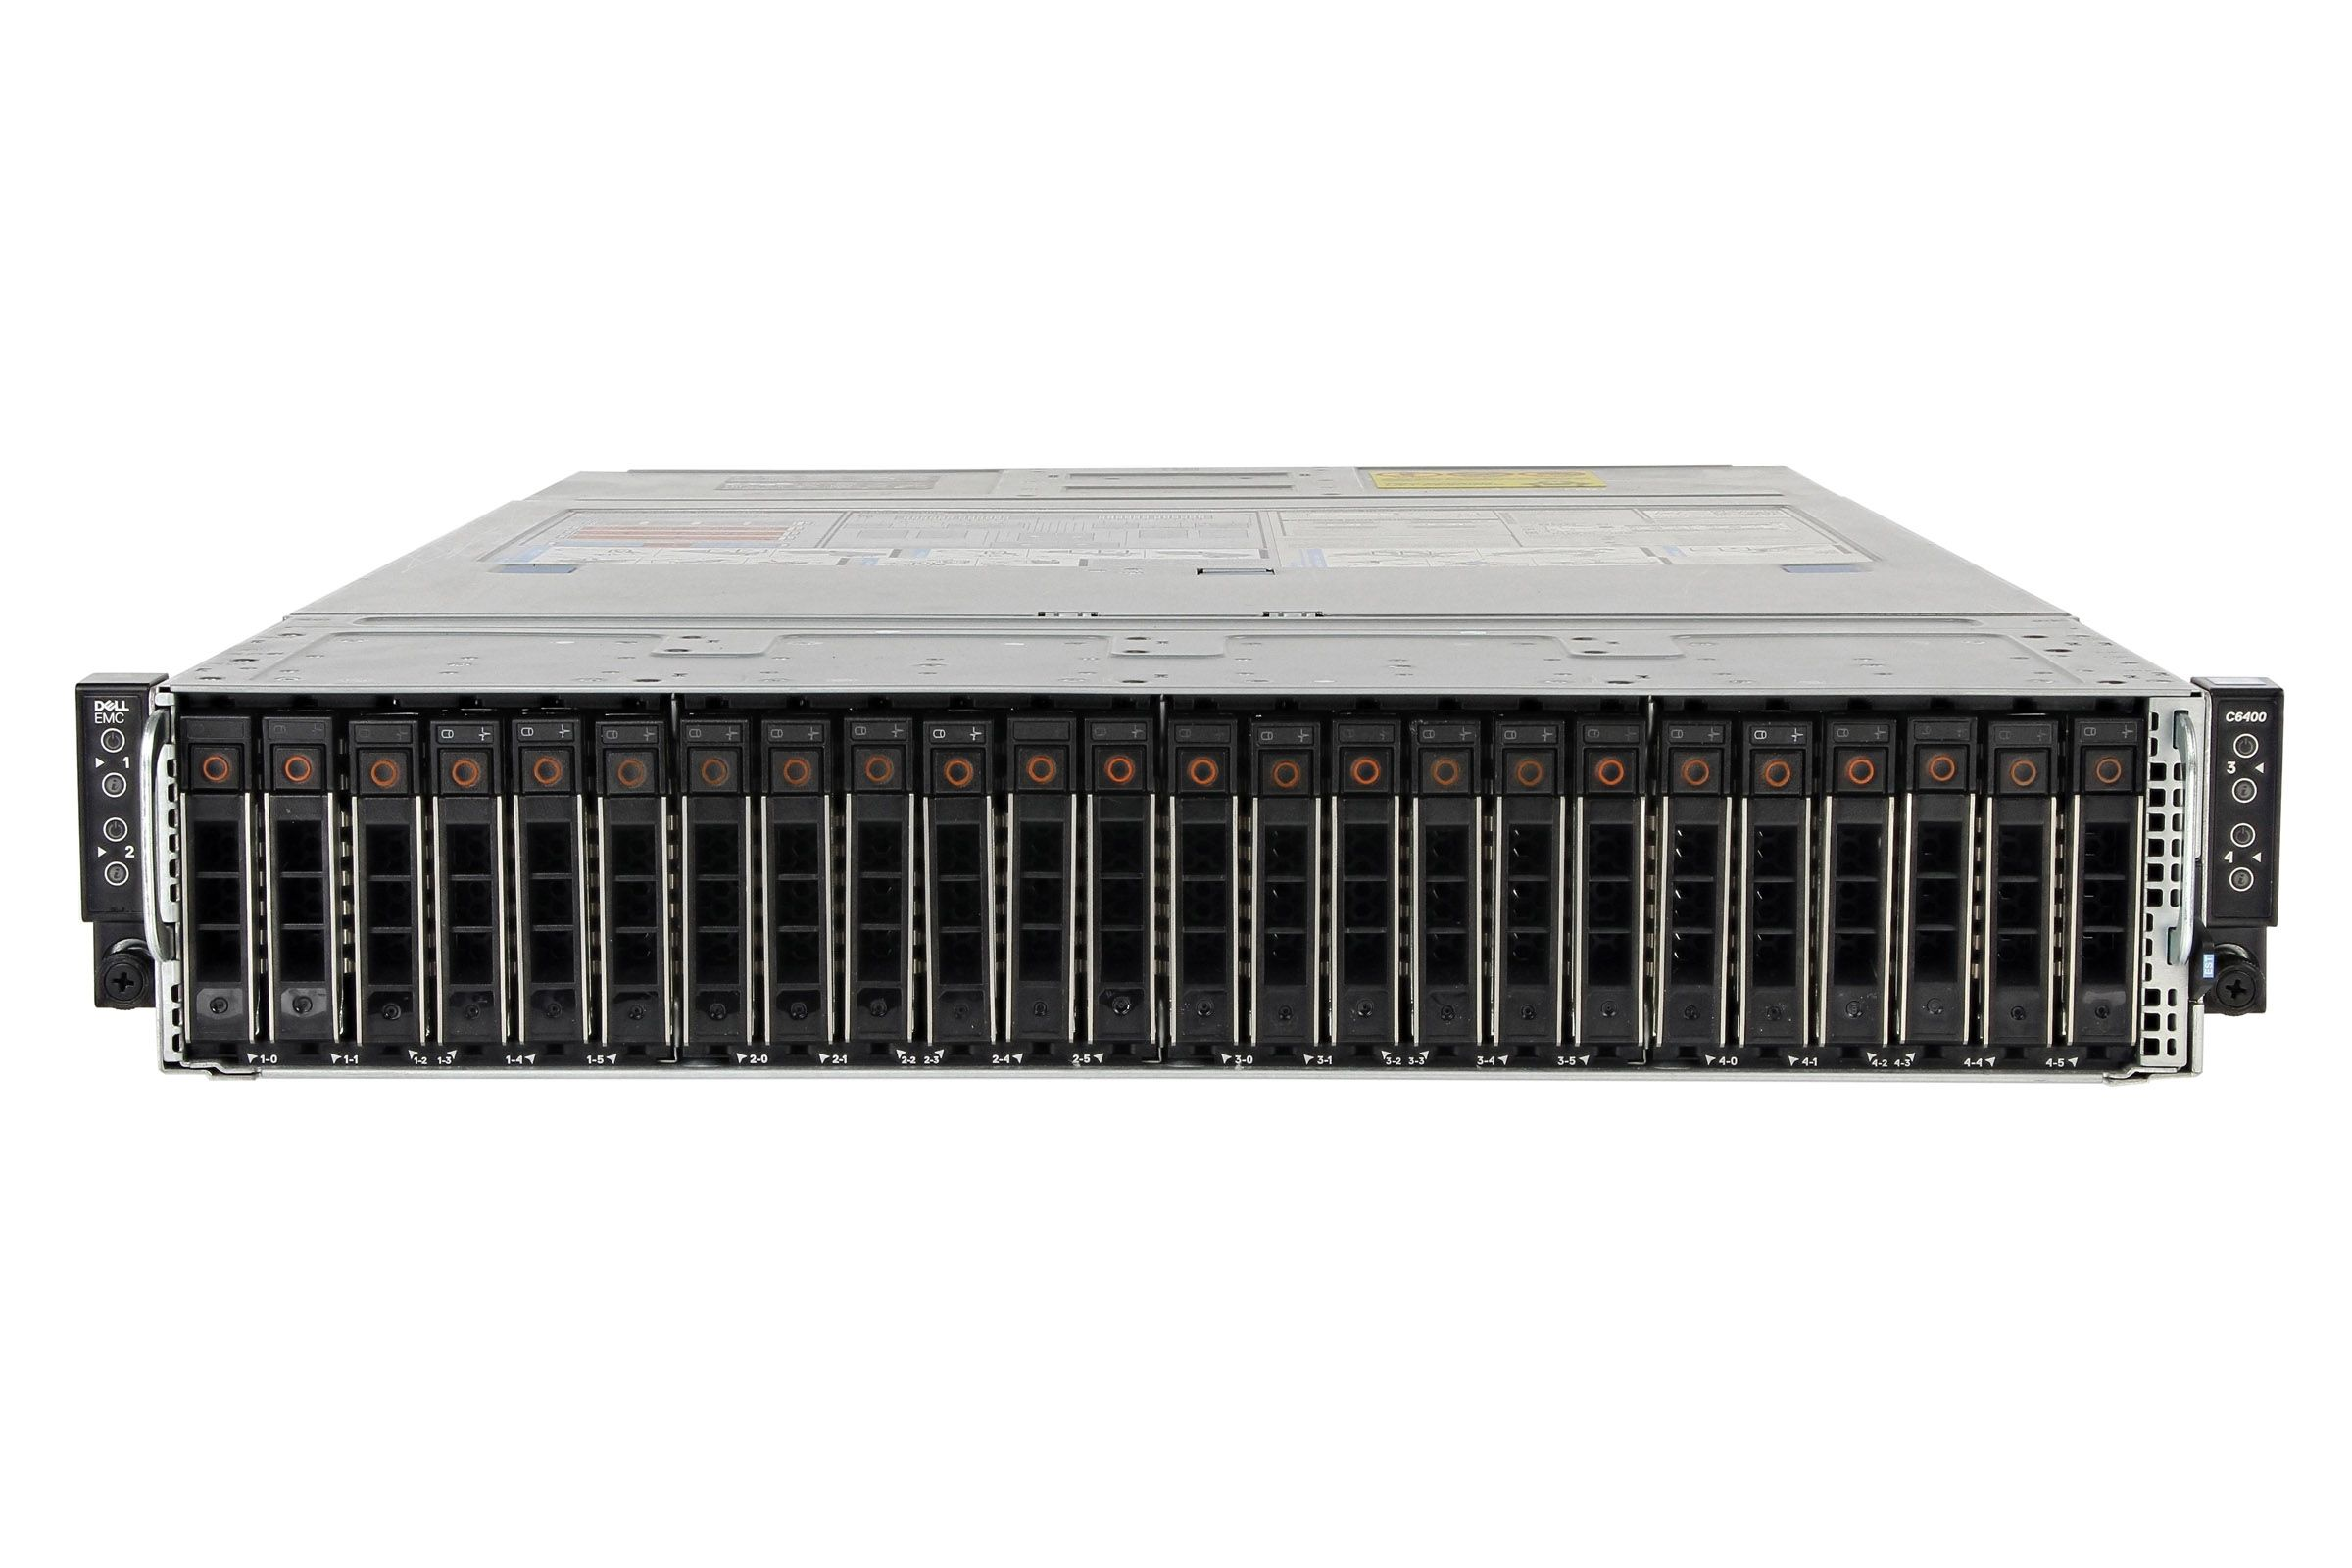 Dell PowerEdge C6420 1x24, 8 x Gold 6128, 512GB, 24 x 1TB, Onboard SATA,  Basic Management